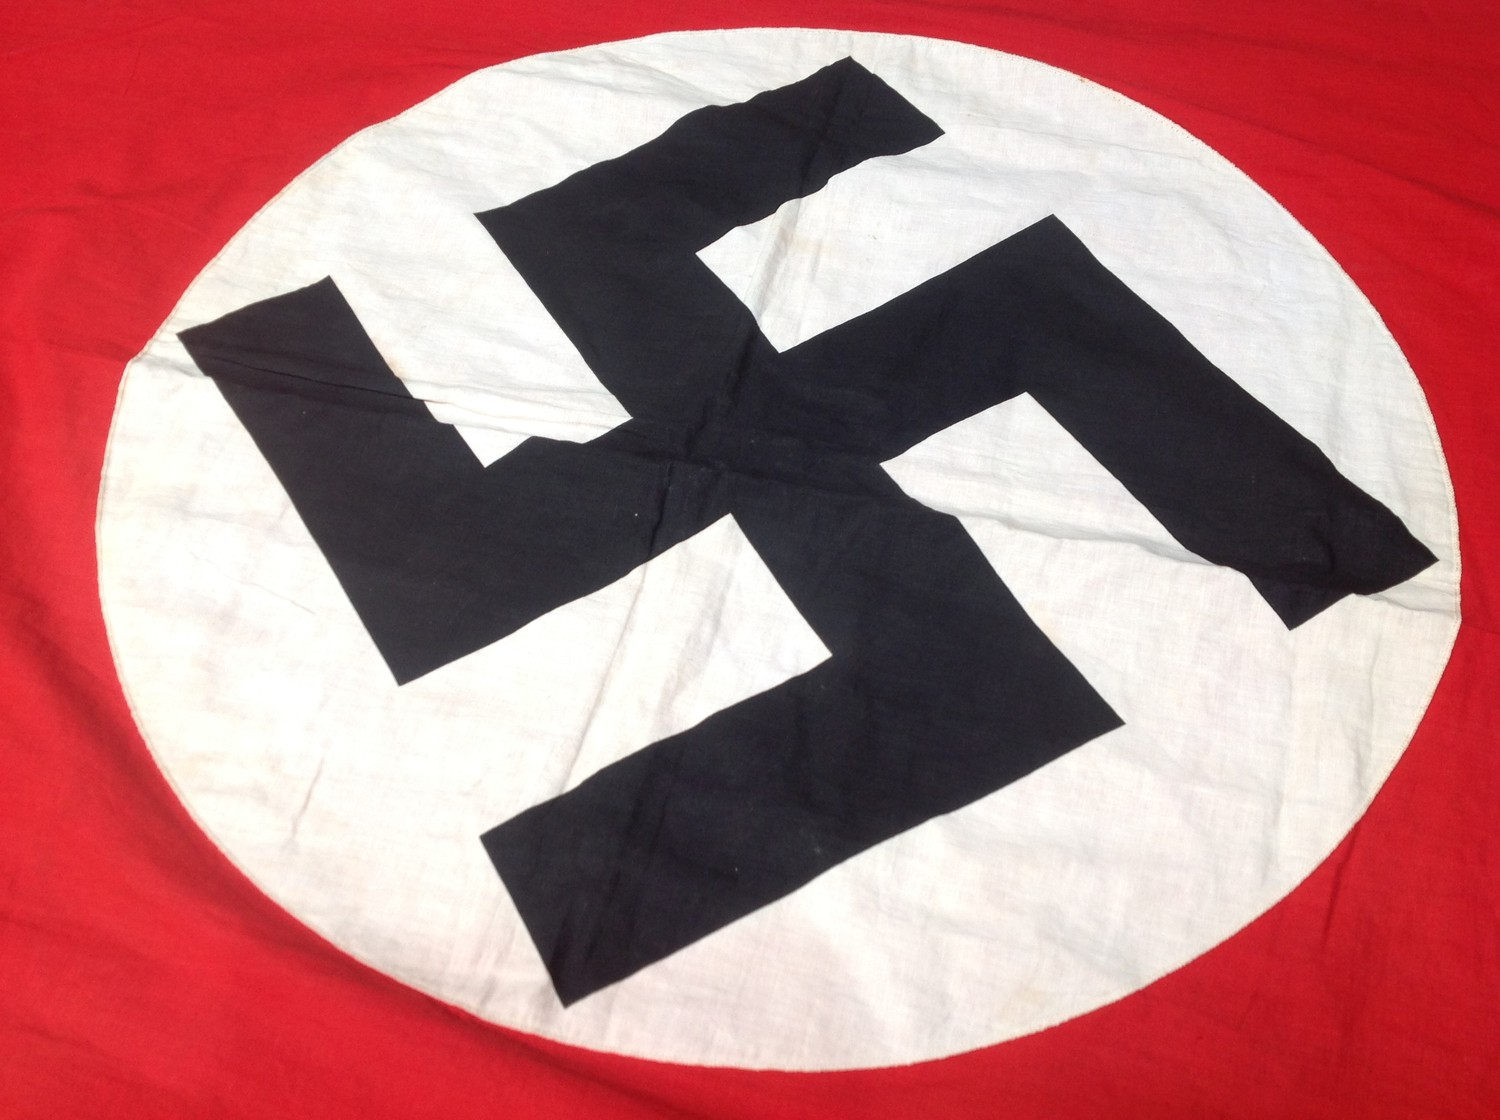 WW2 Third Reich NSDAP Banner, size 280cm x 116cm. Printed Swastika on a separate white roundal. No - Image 2 of 3